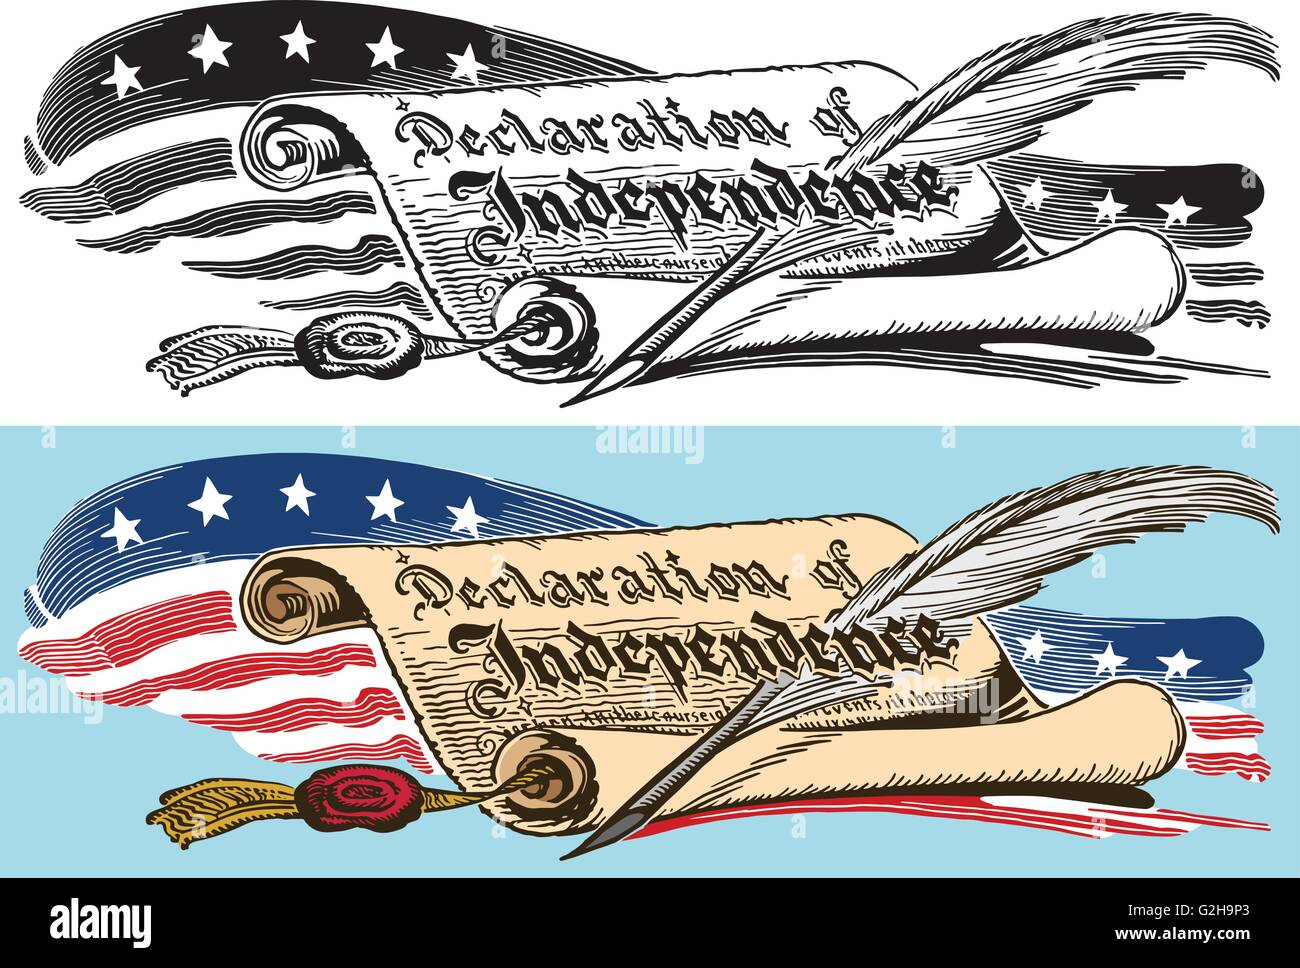 declaration of independence clipart.html